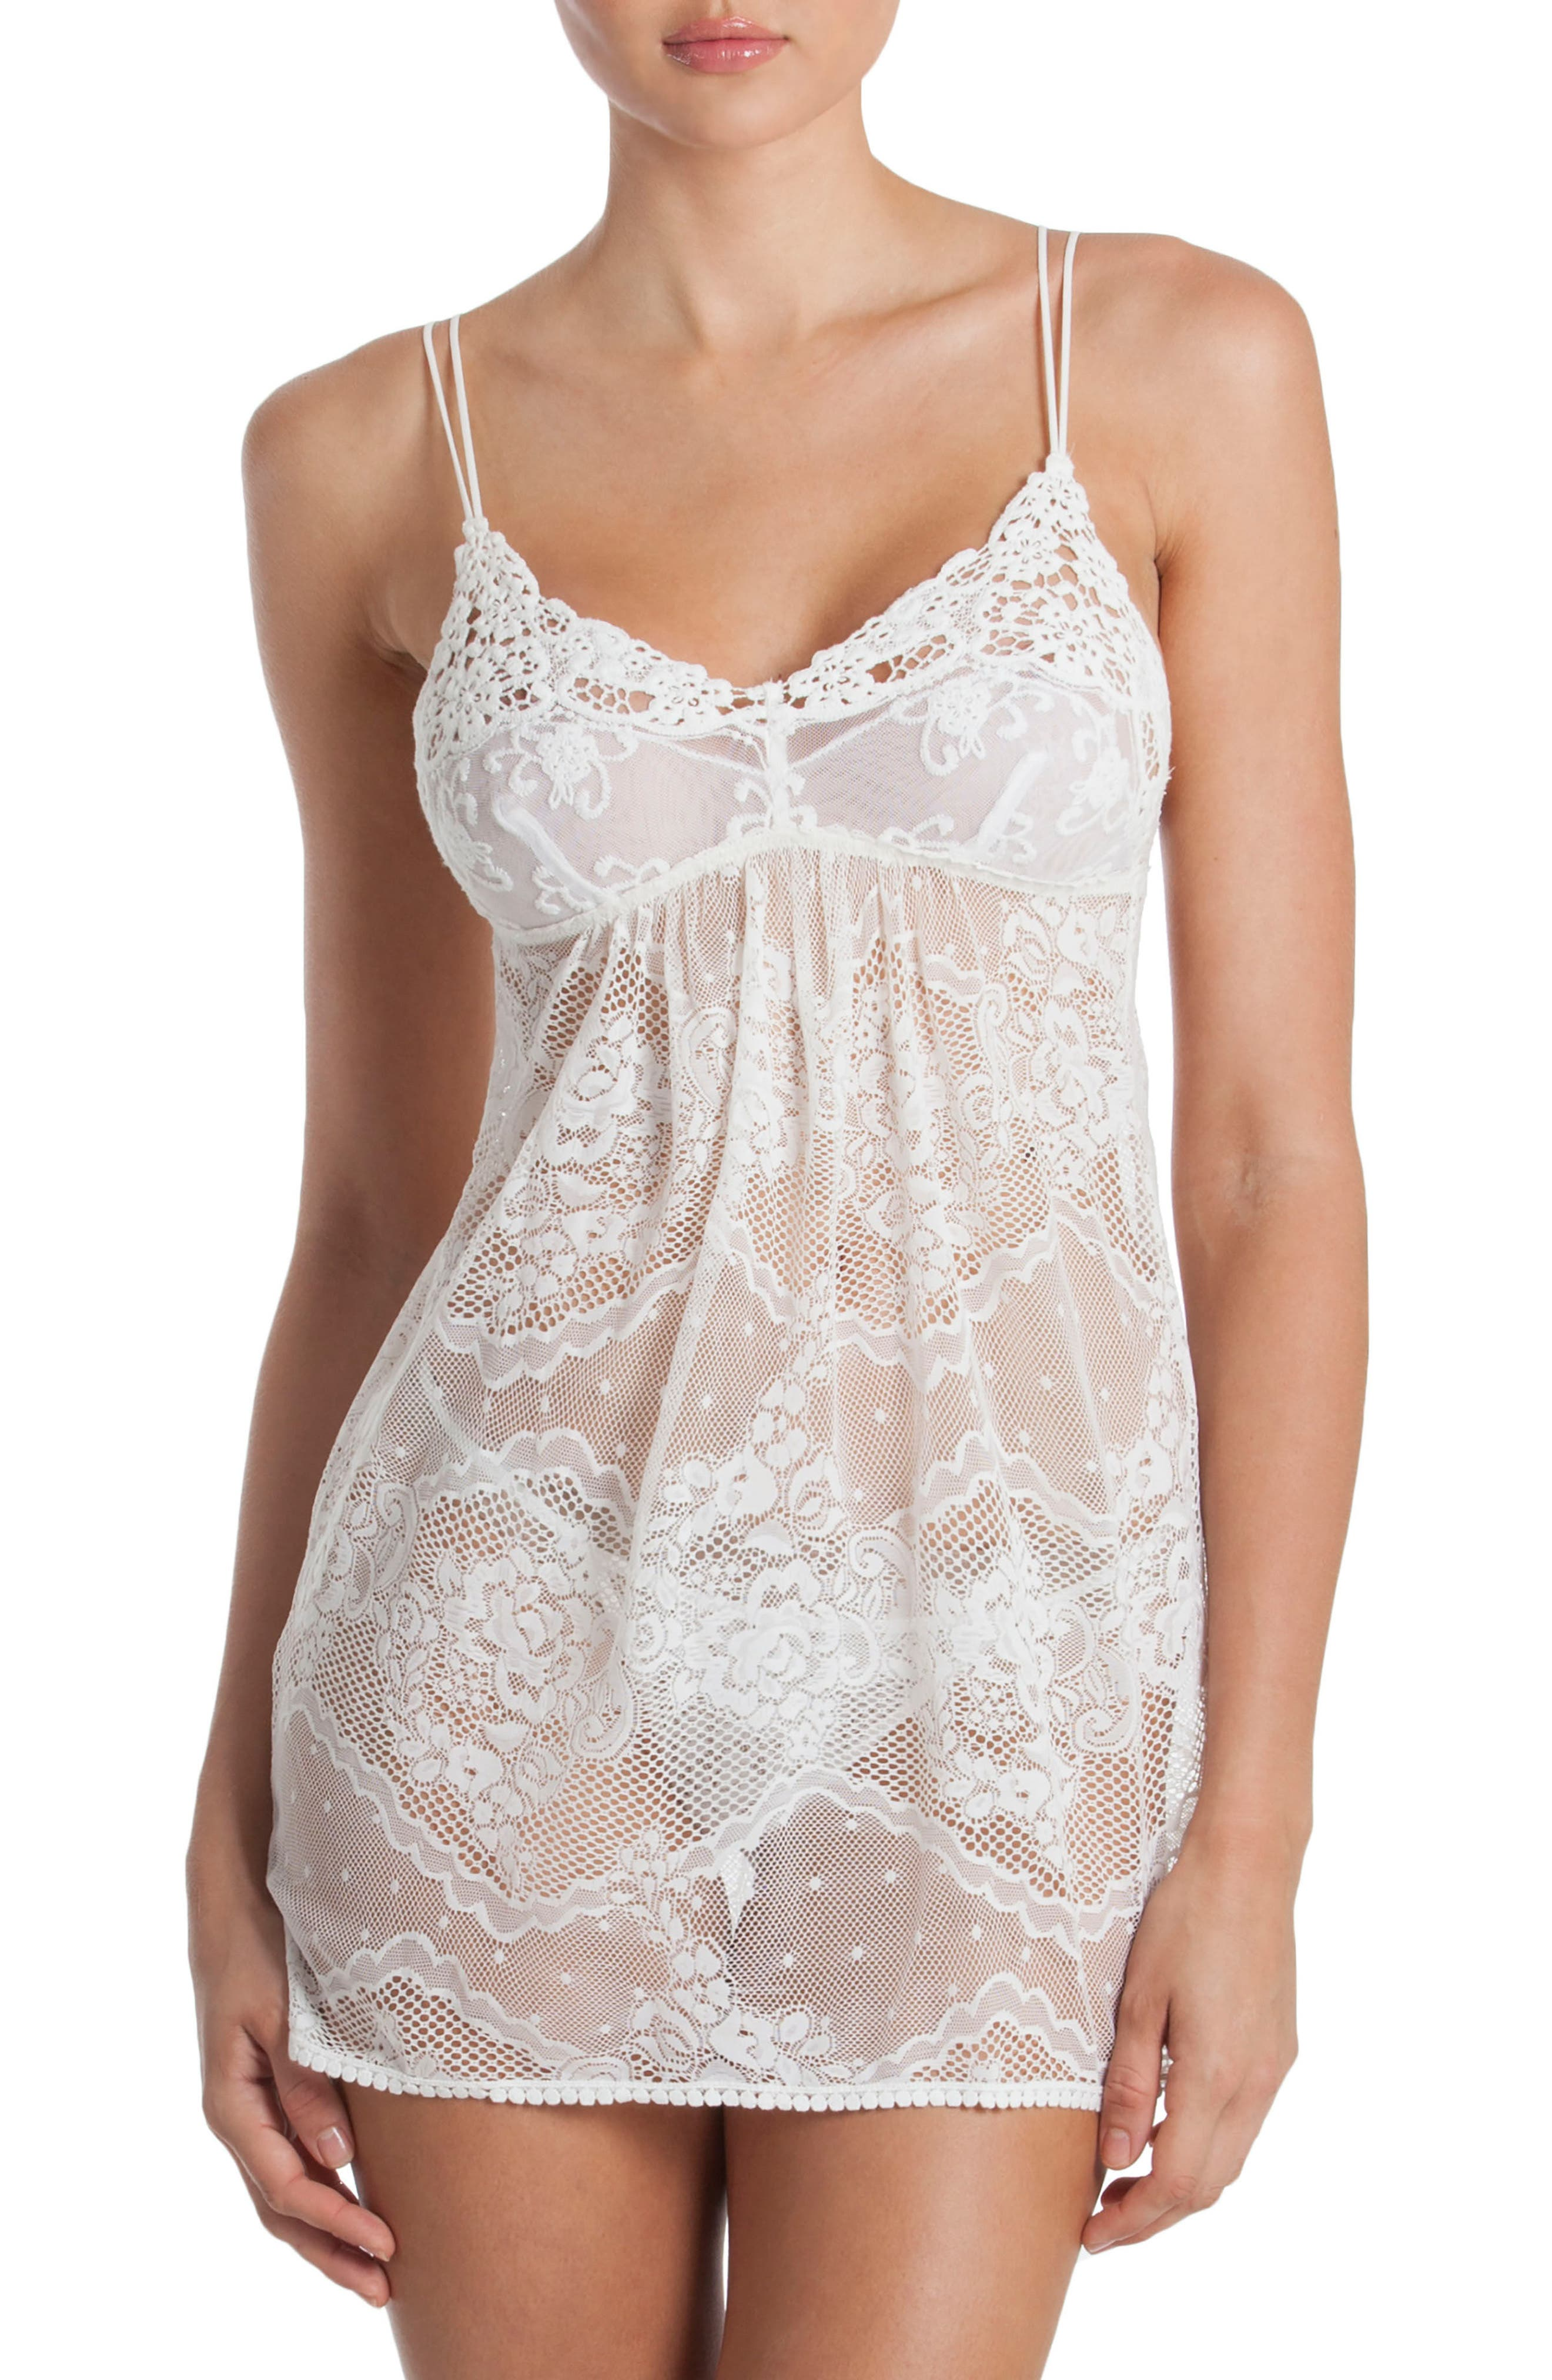 In Bloom by Jonquil Chemise & Panty